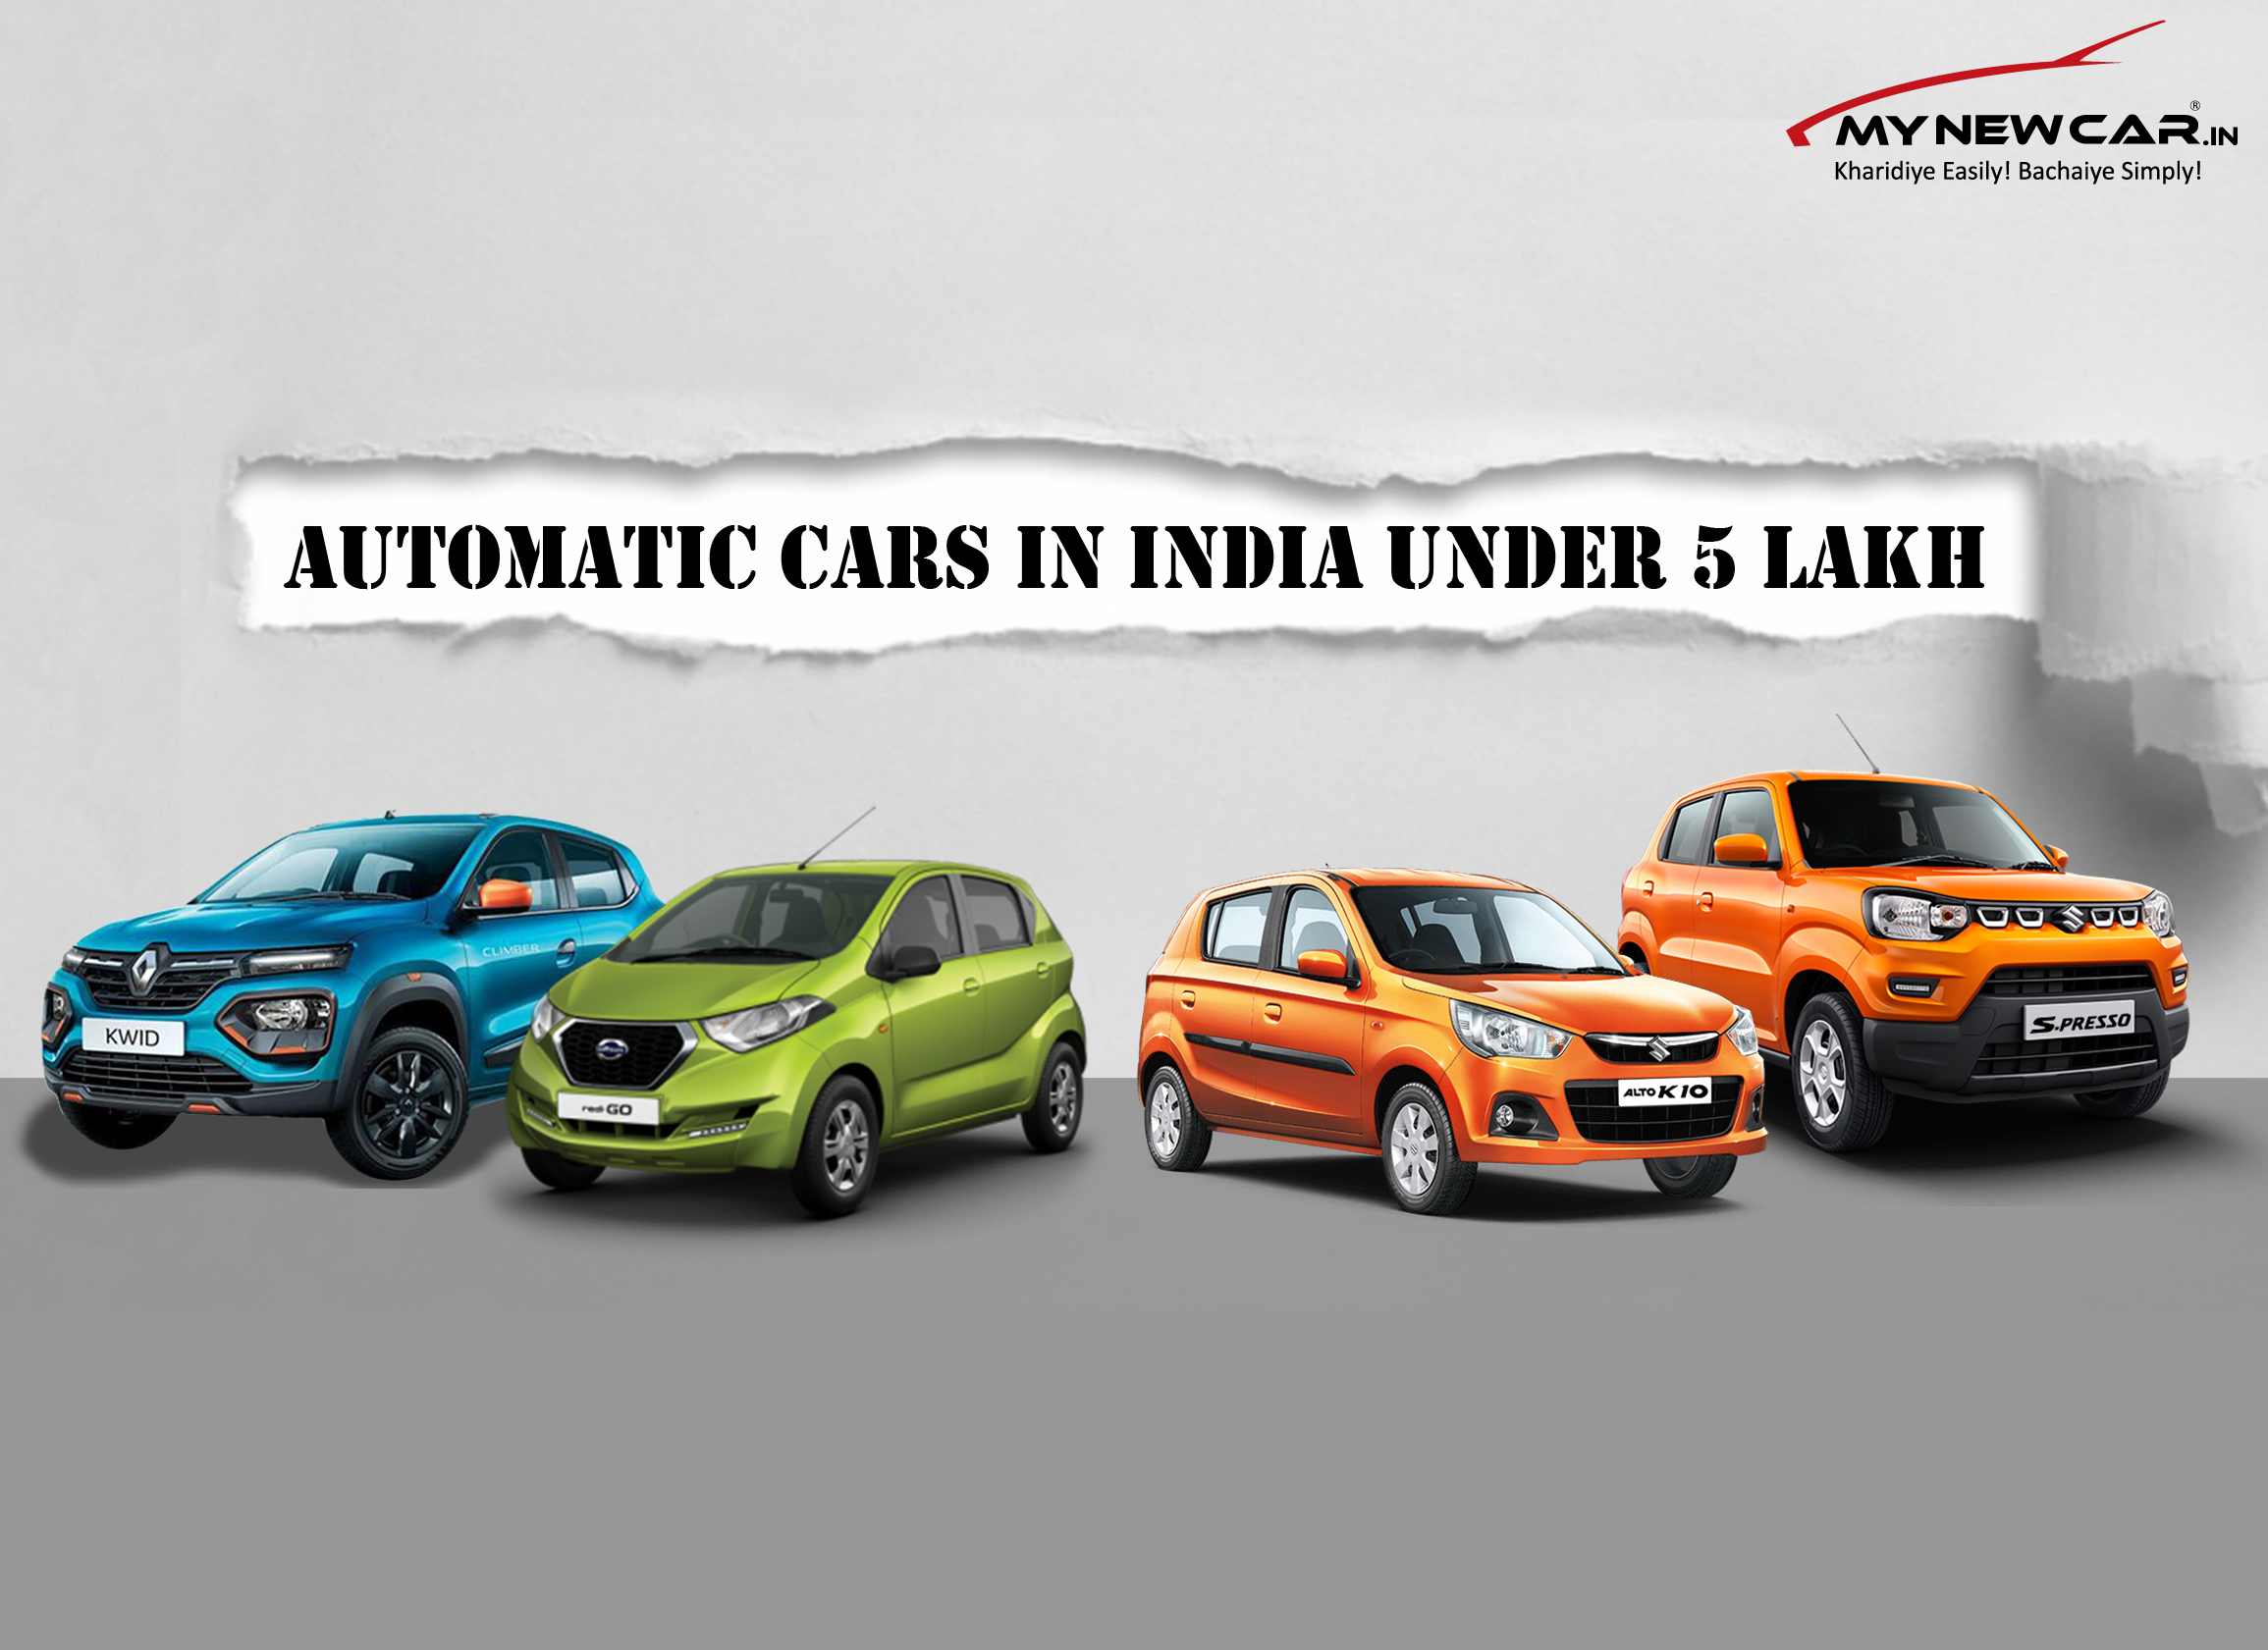 List of Automatic Cars in India under 5 lakhs